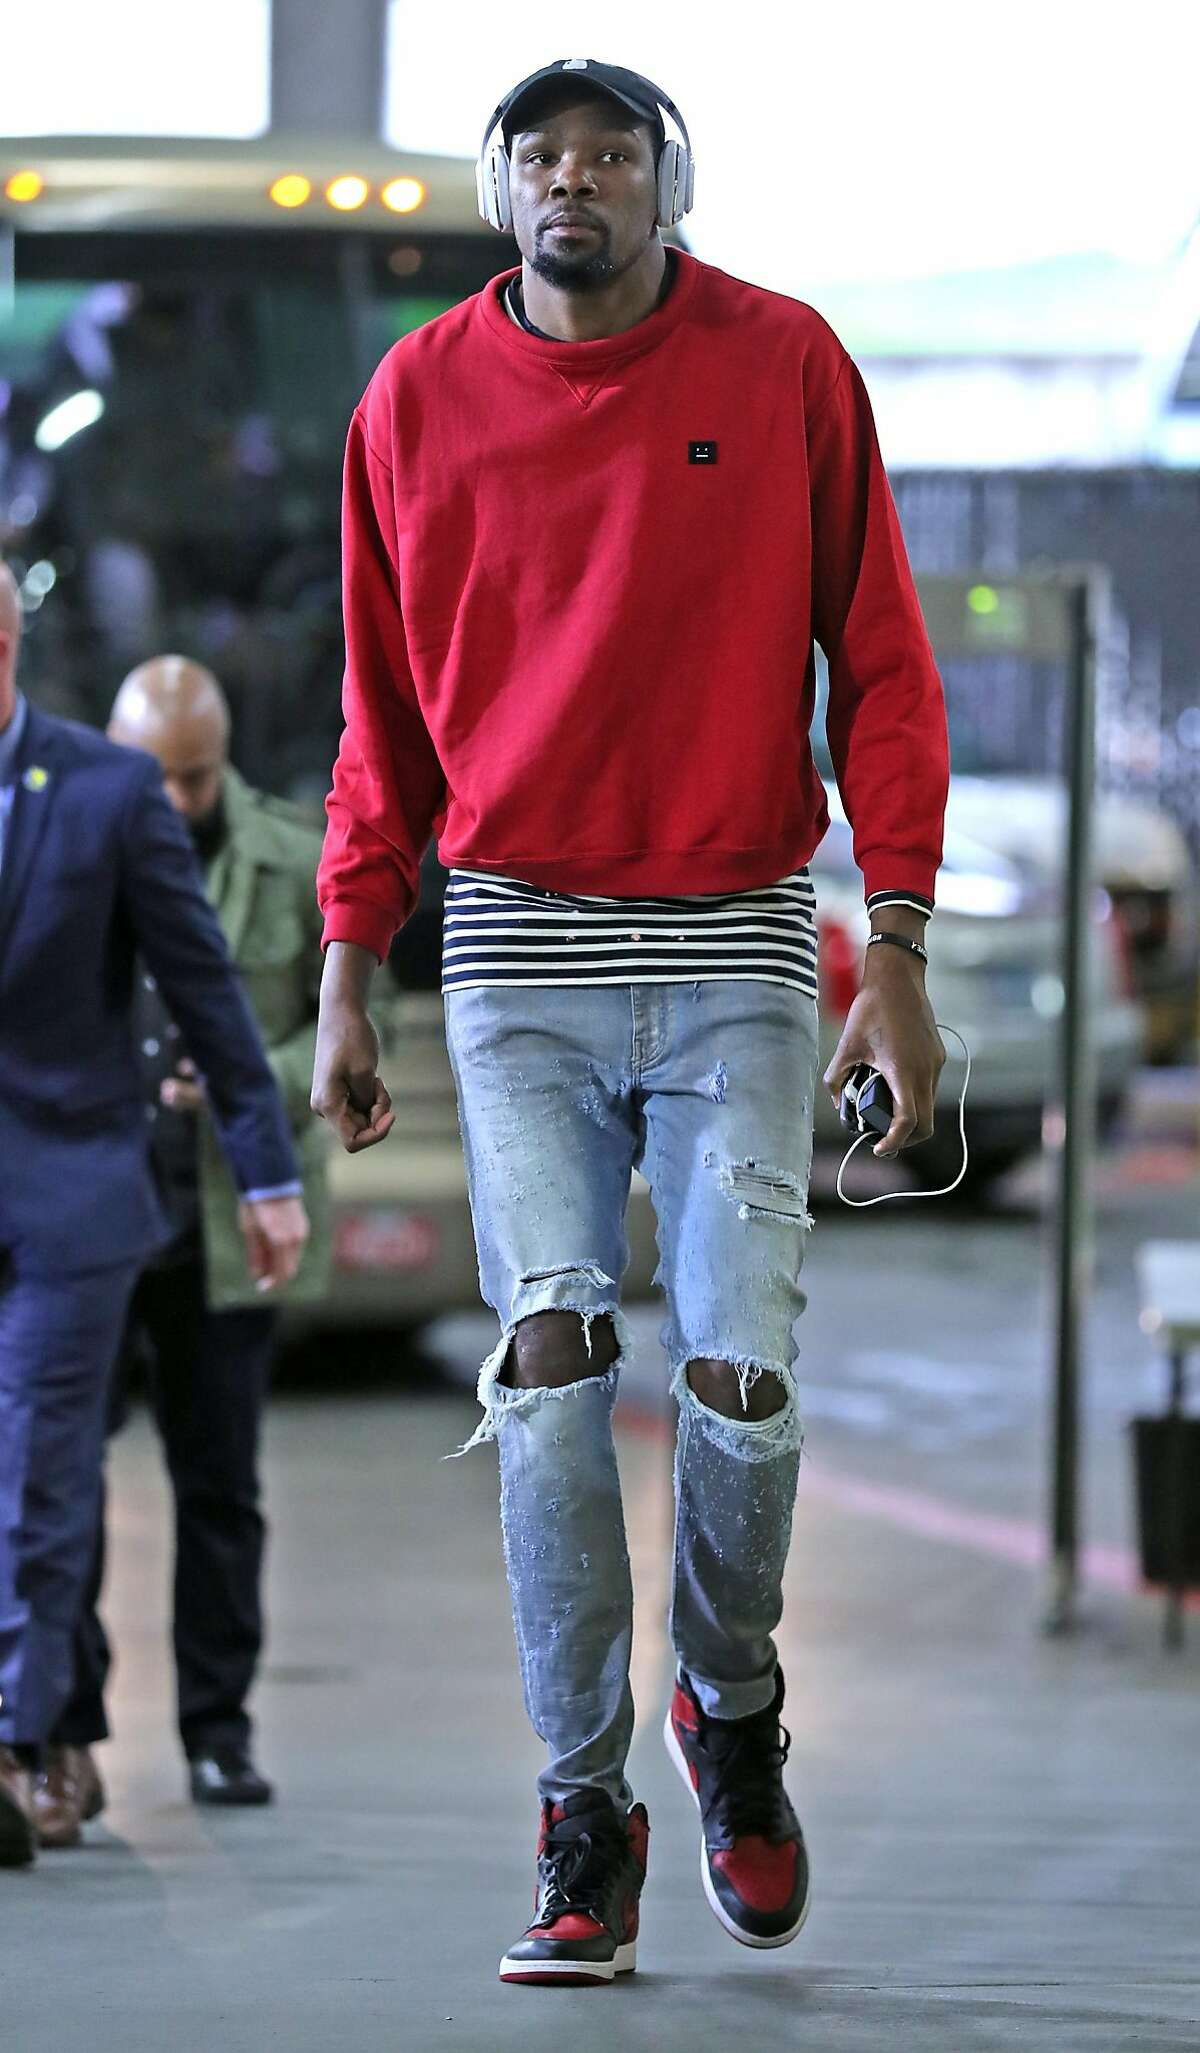 Gallery: The pregame looks of the Golden State Warriors Kevin Durant, who recently gave us a peek inside his massive closet, was strictly casual before Game 4 against the Blazers, rocking an Acne Studios sweatshirt that retails for $240.